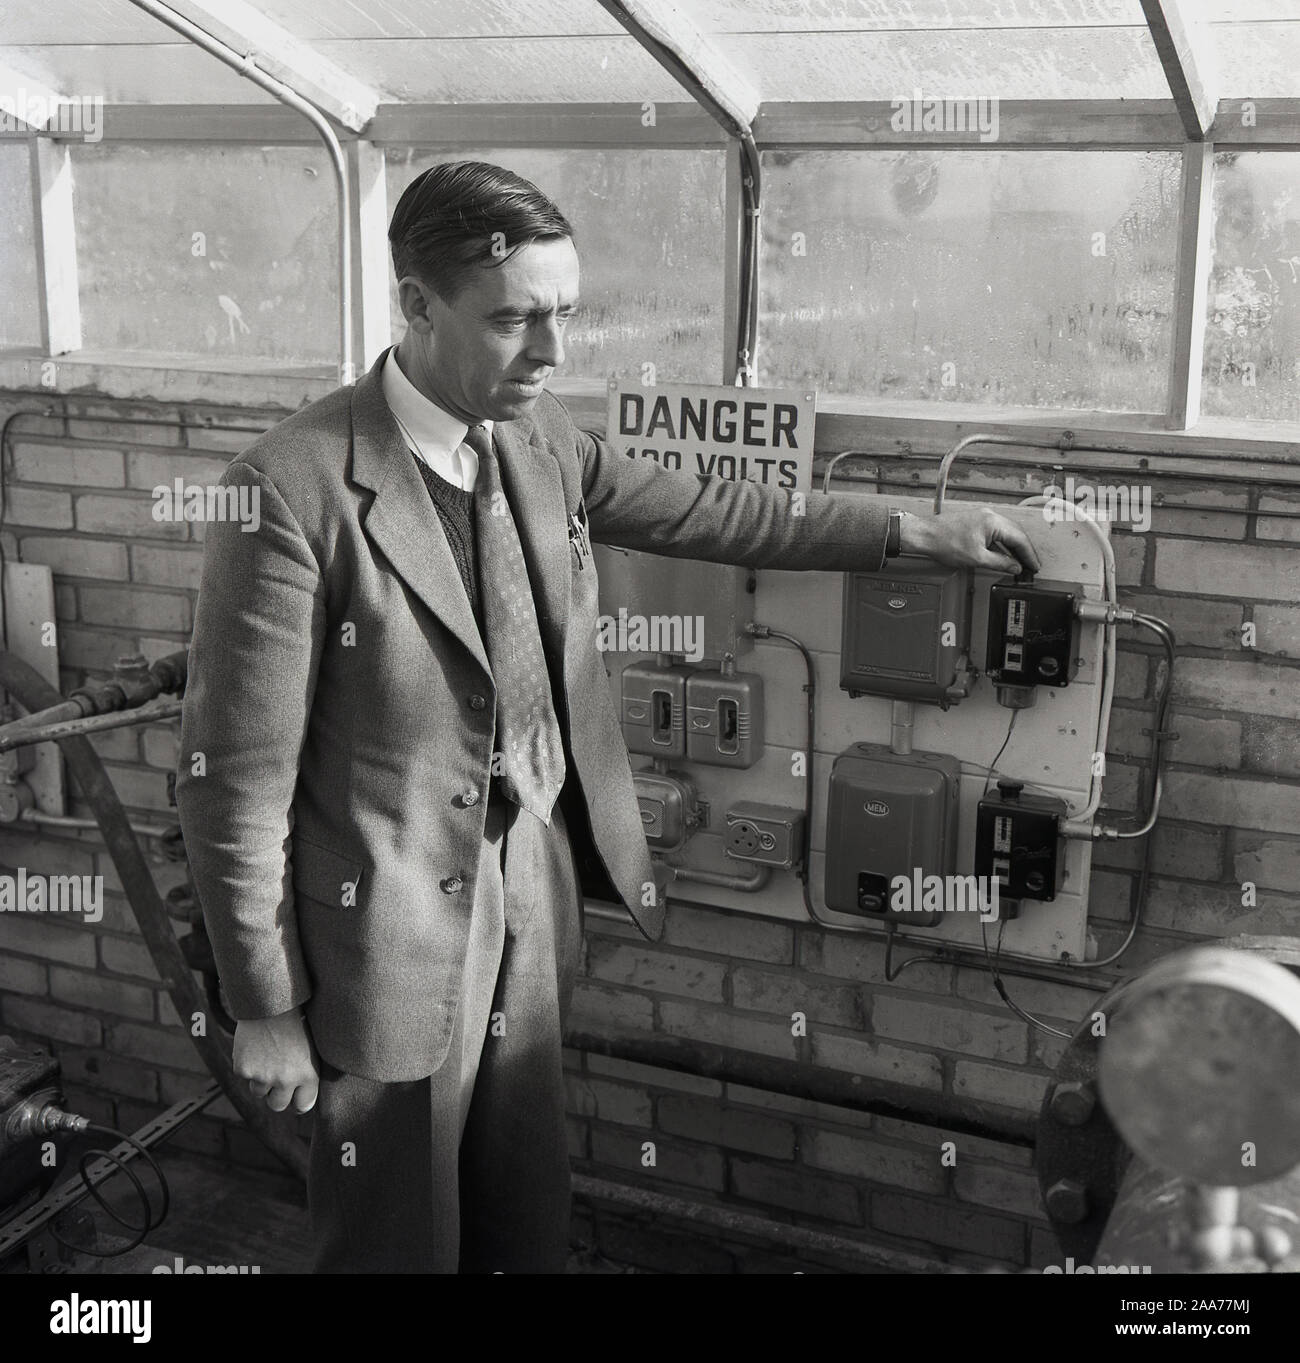 1950s, historcial, agricutulture, a man in a suit with his tie outside a sweater standing by the meters in a large greenhouse, England, UK. Stock Photo